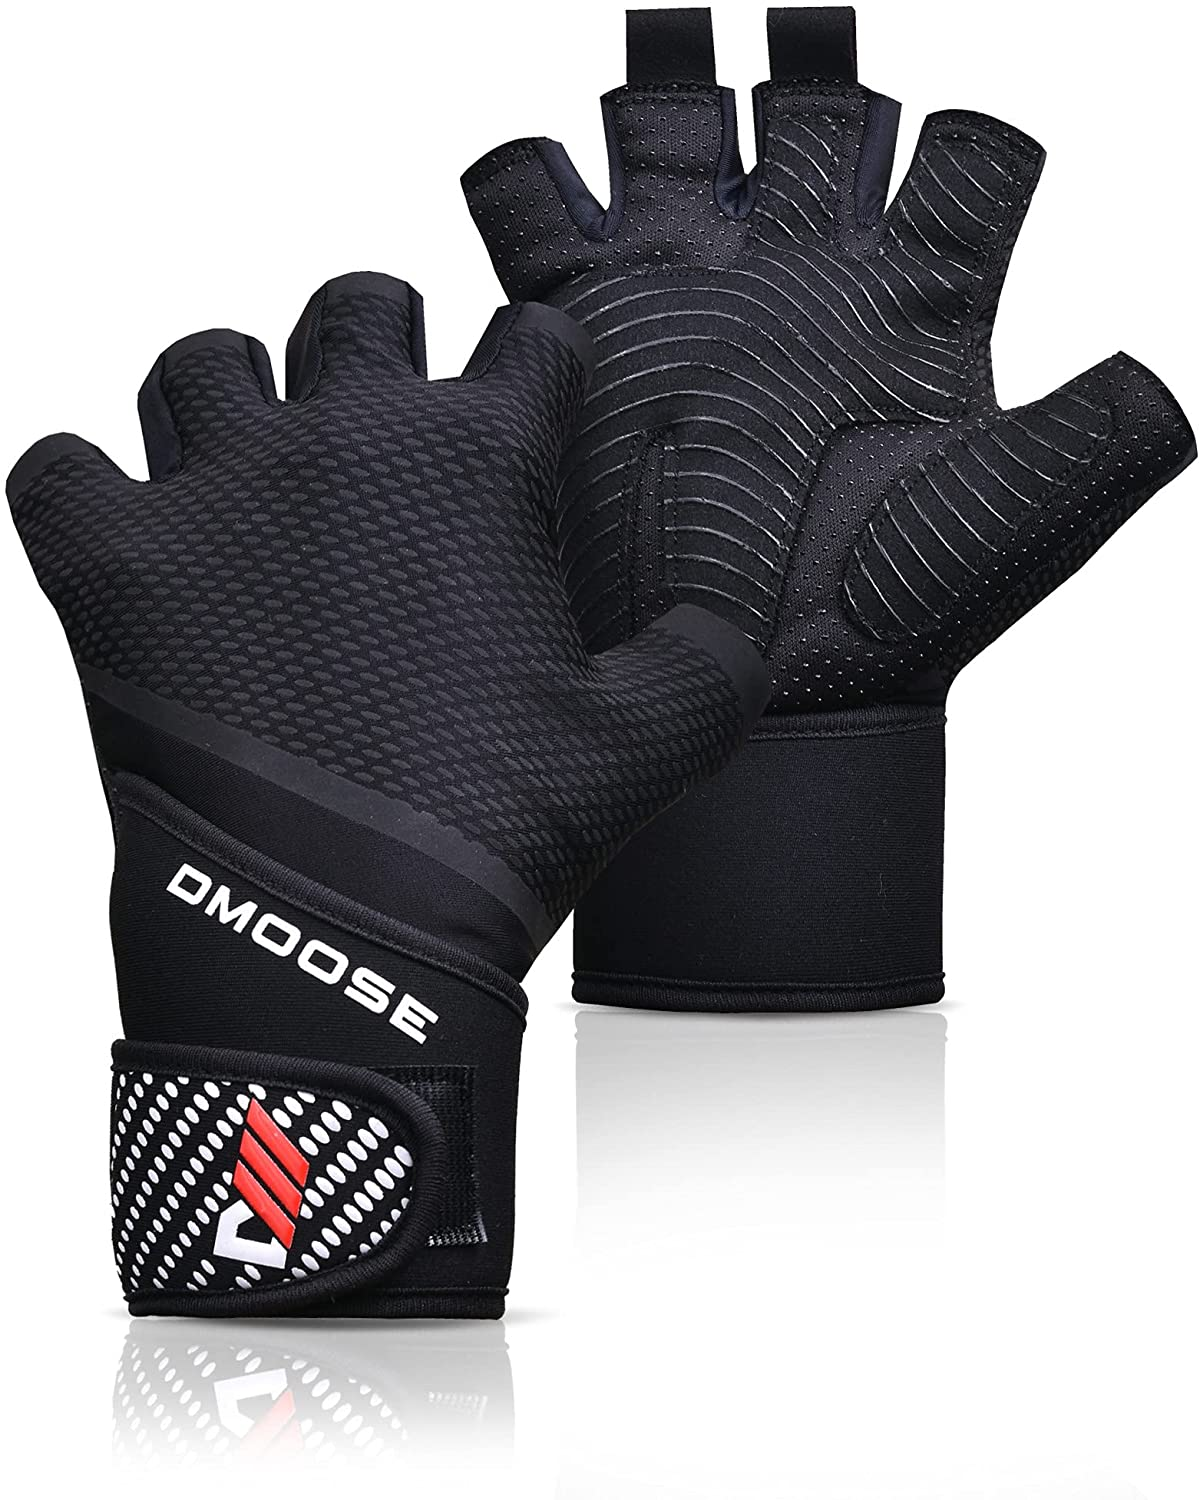 Pull Up Gloves With Wrist Support